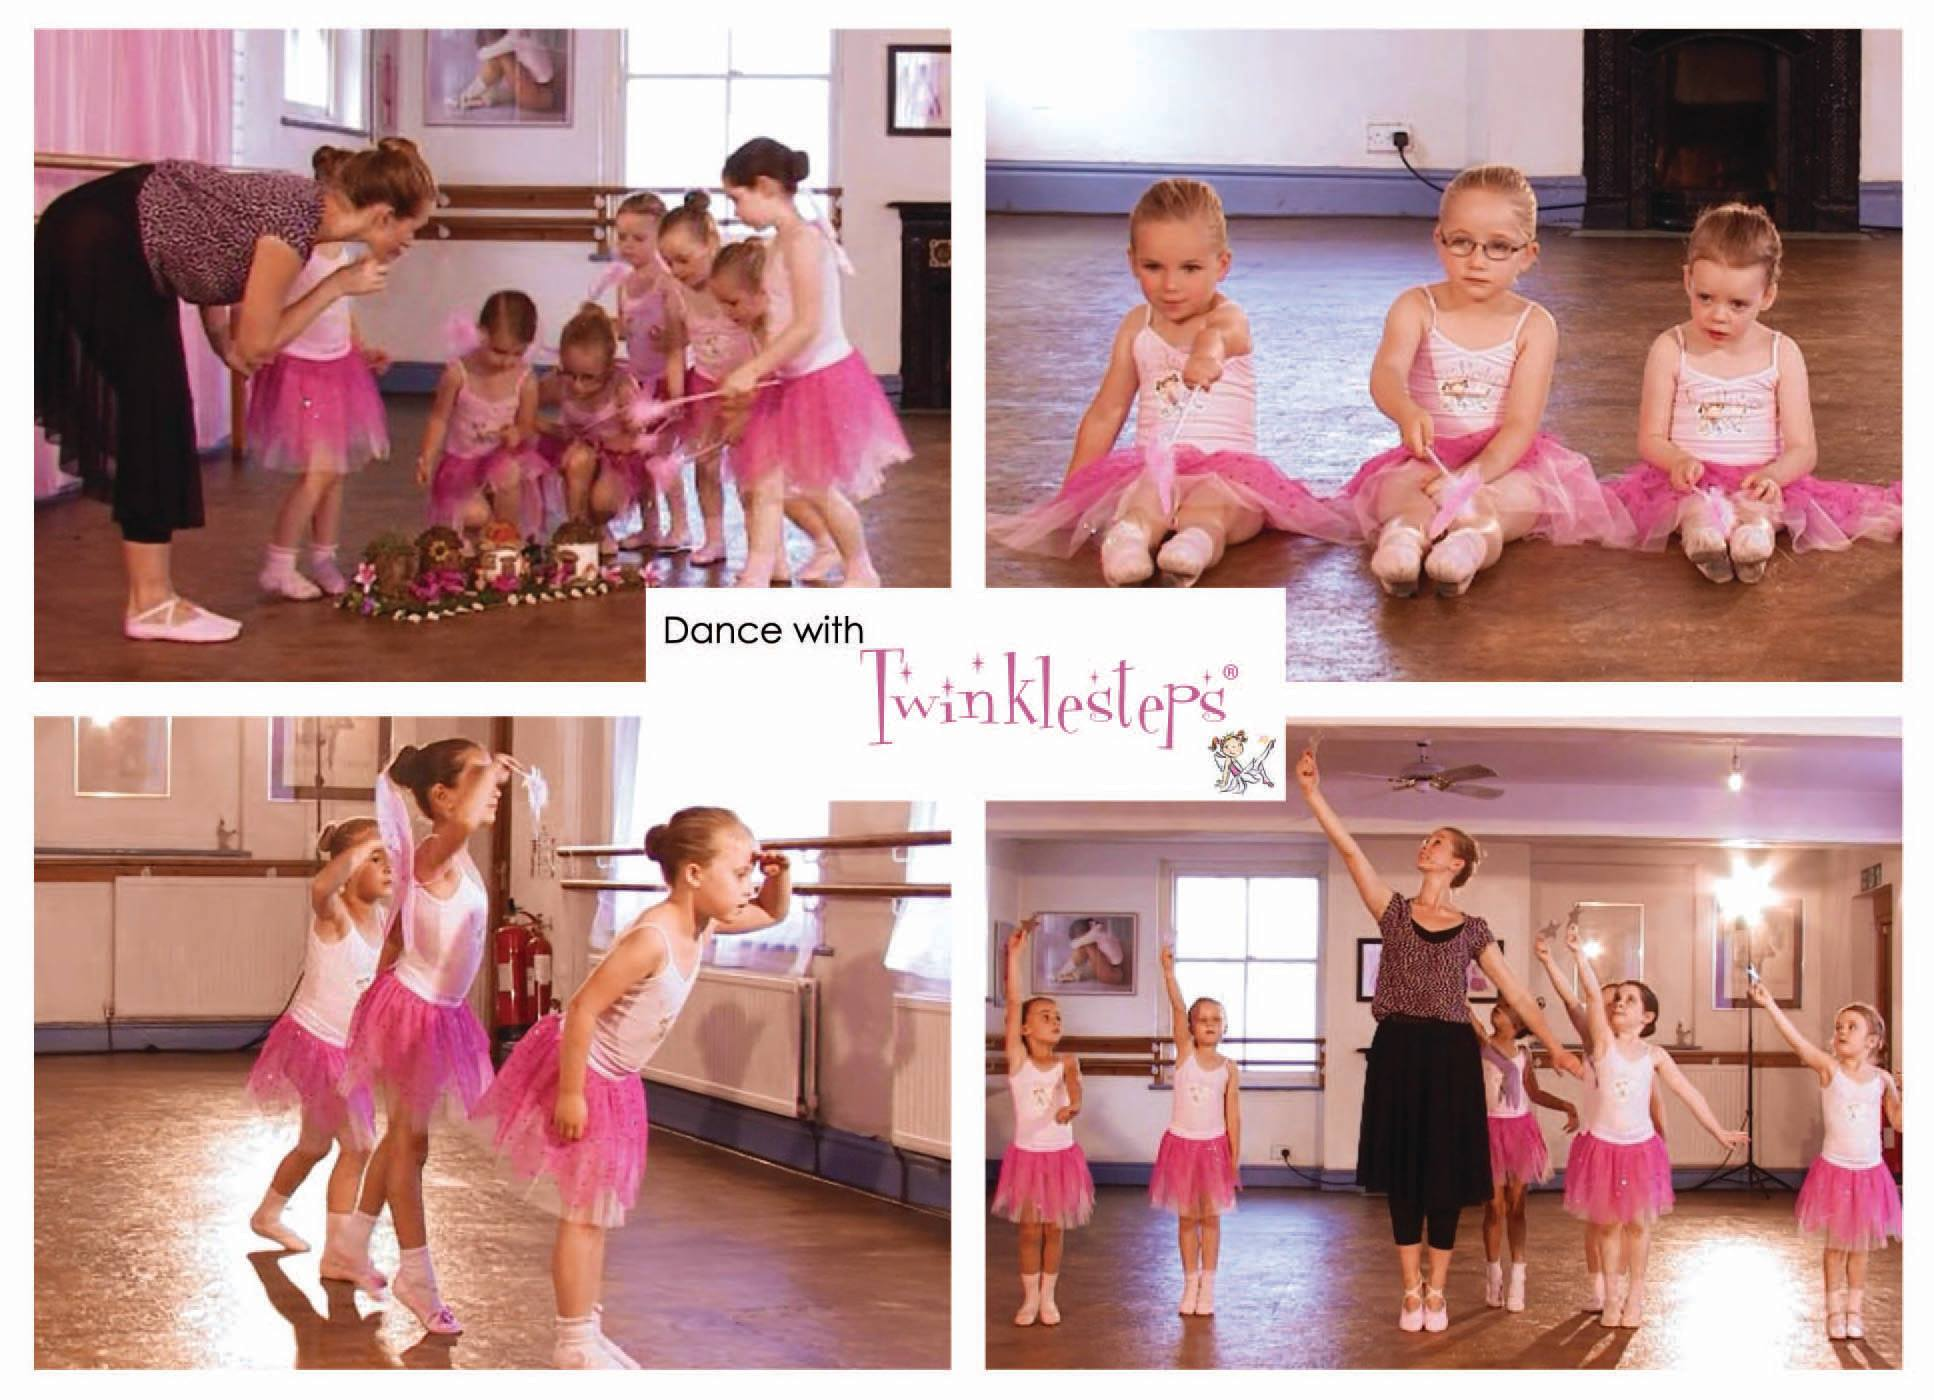 Dance with Twinklesteps